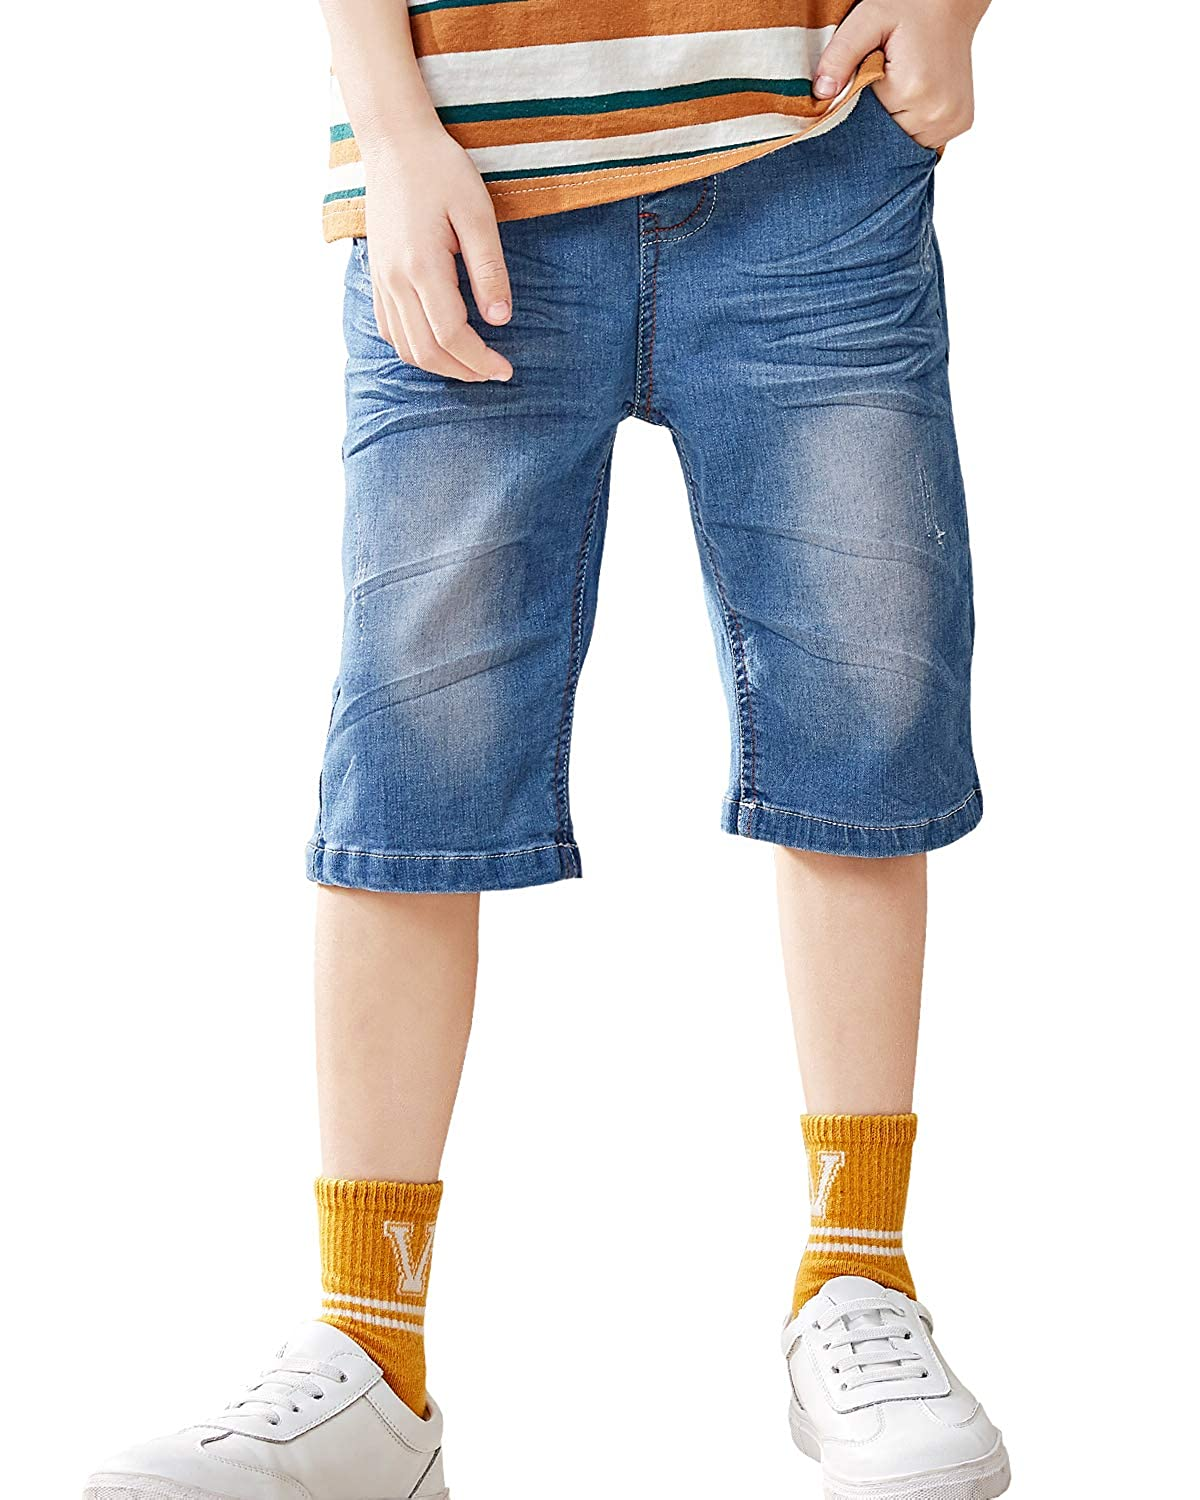 BYCR Boys Denim Jeans Short Elastic Waistband Loose Fit Pull on Shorts Trousers